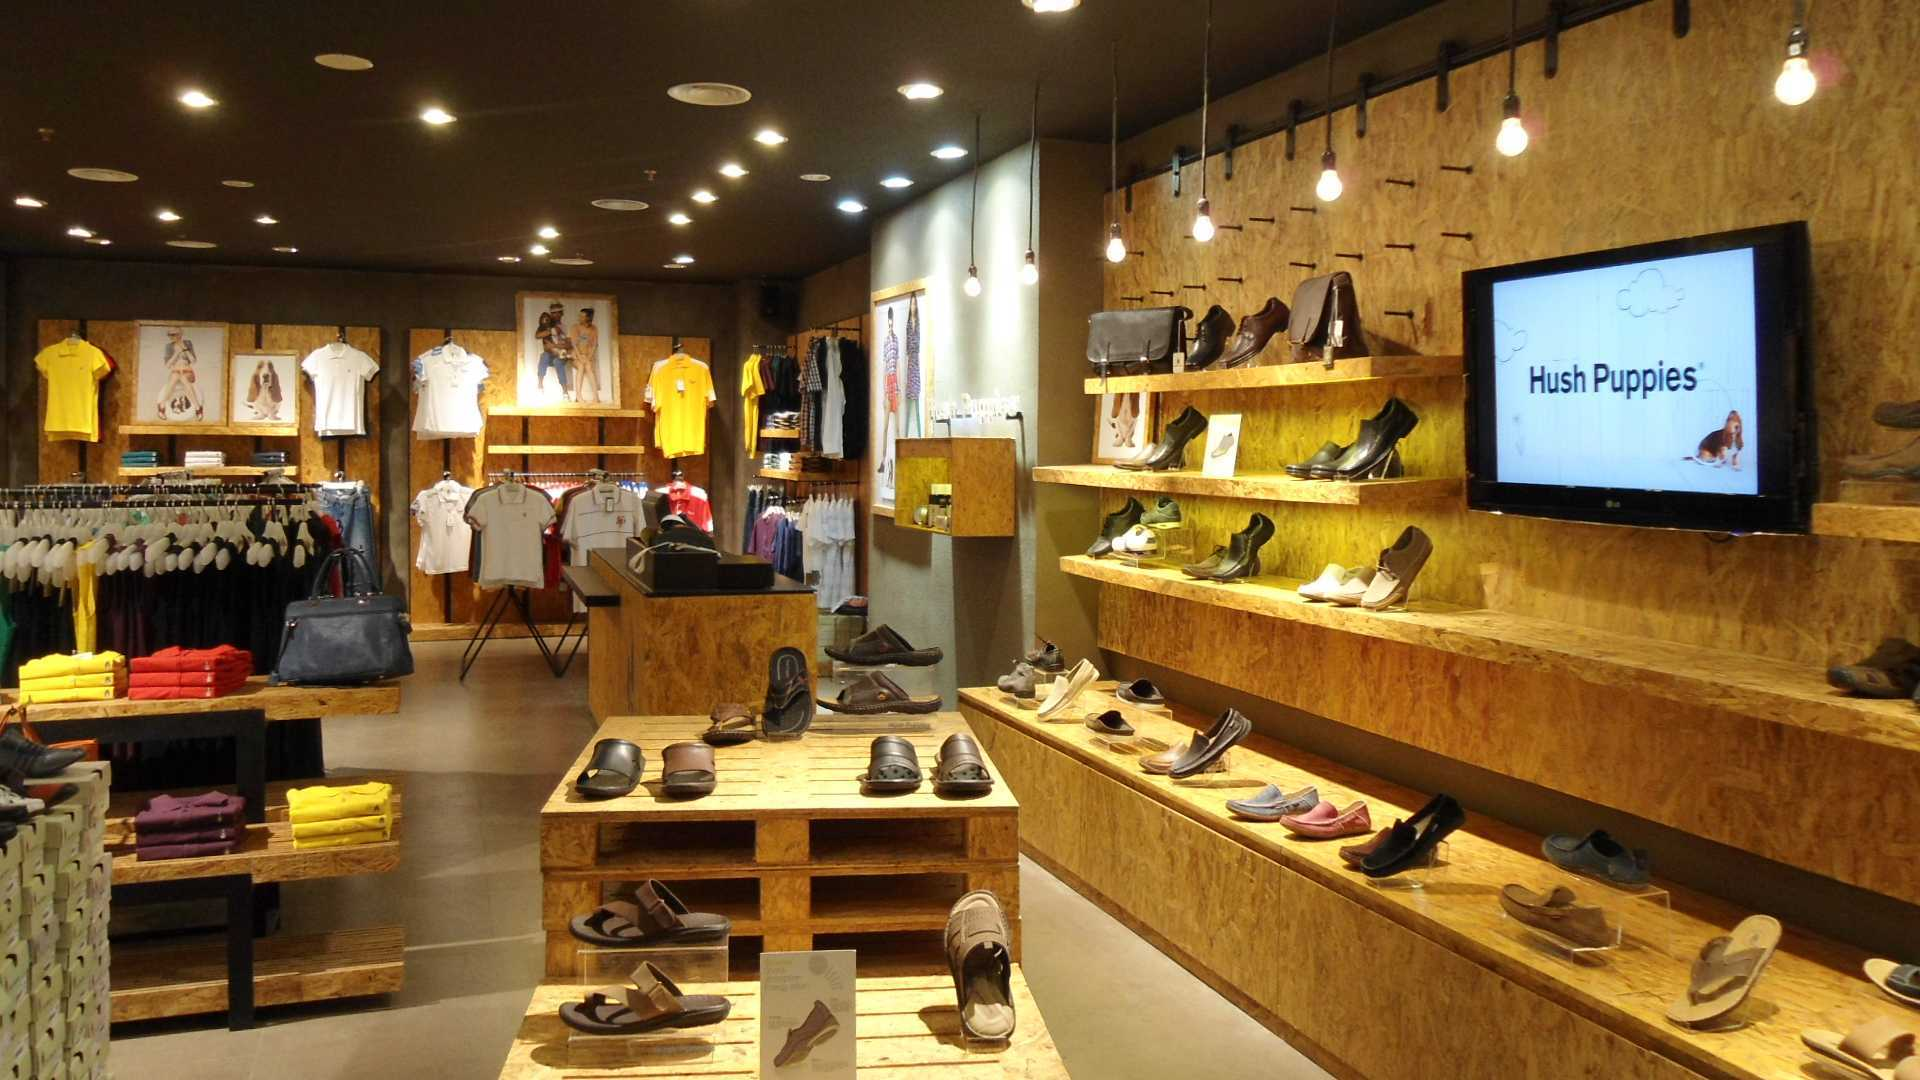 Canvas Mkc Store Hush Puppies Bali Bali Display Minimalis  21071